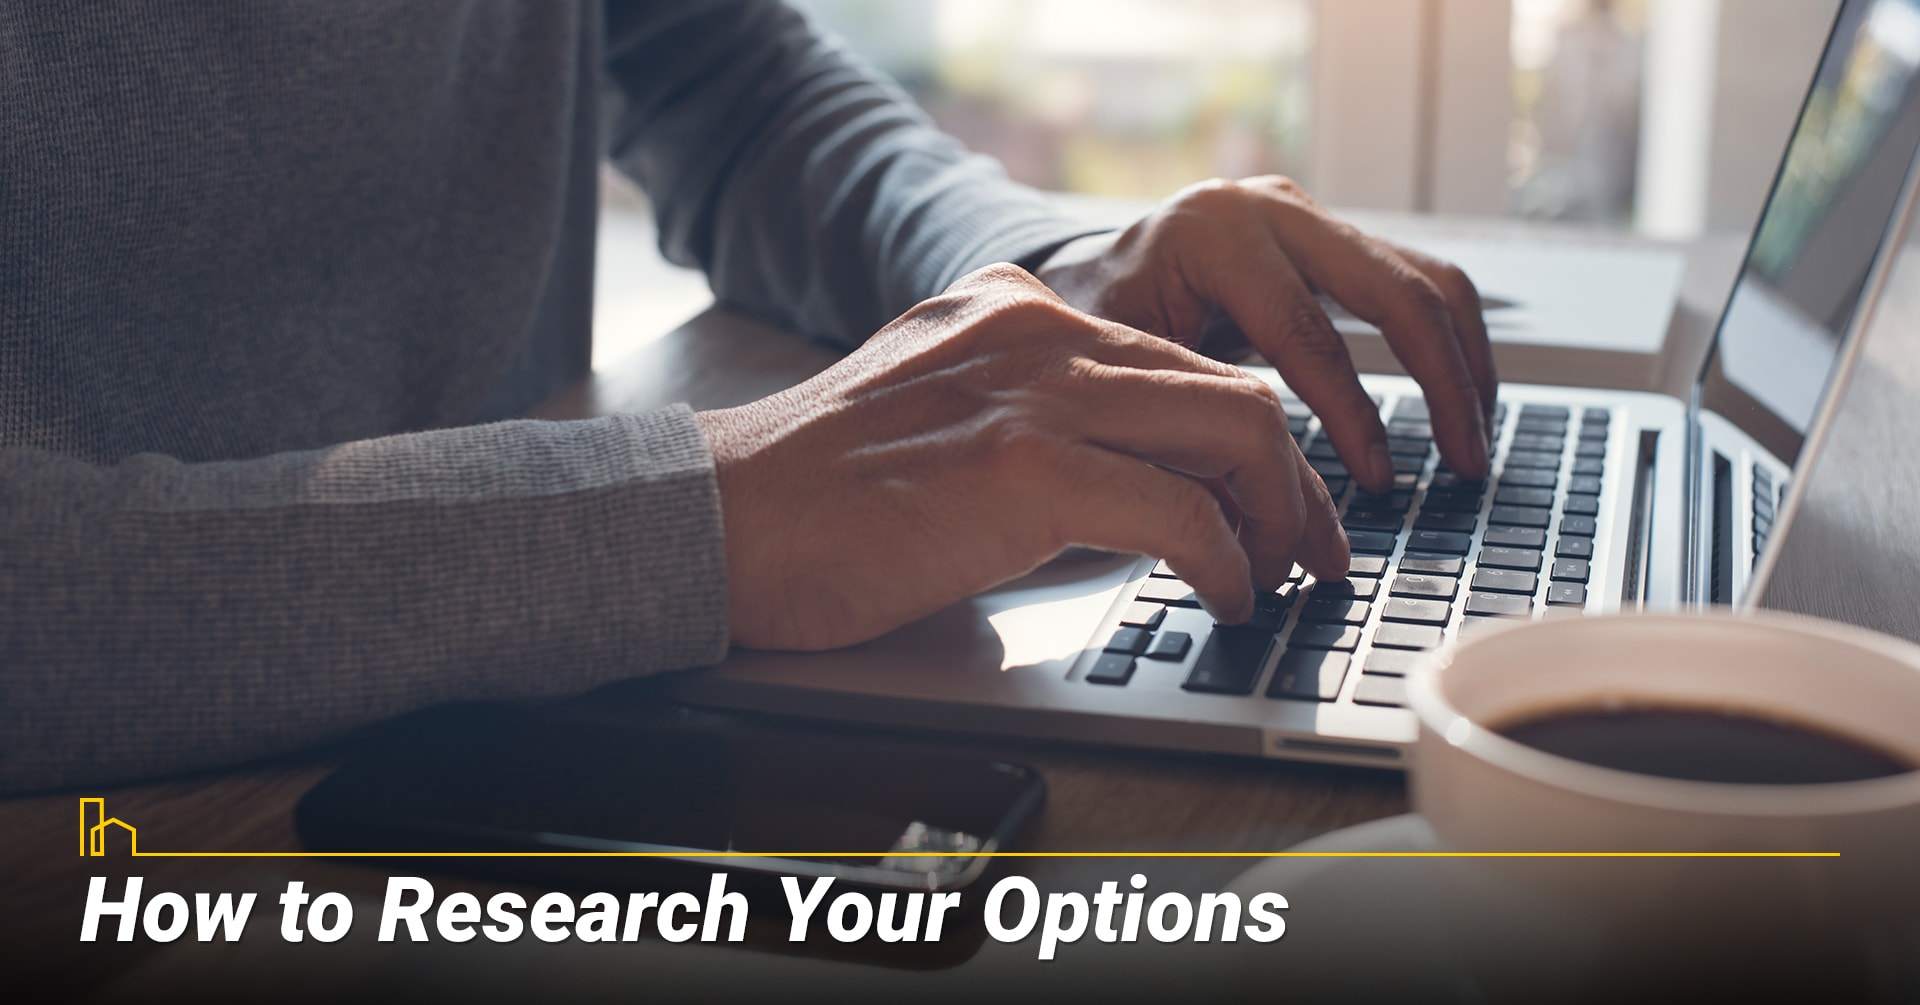 How to Research Your Options, do your own research